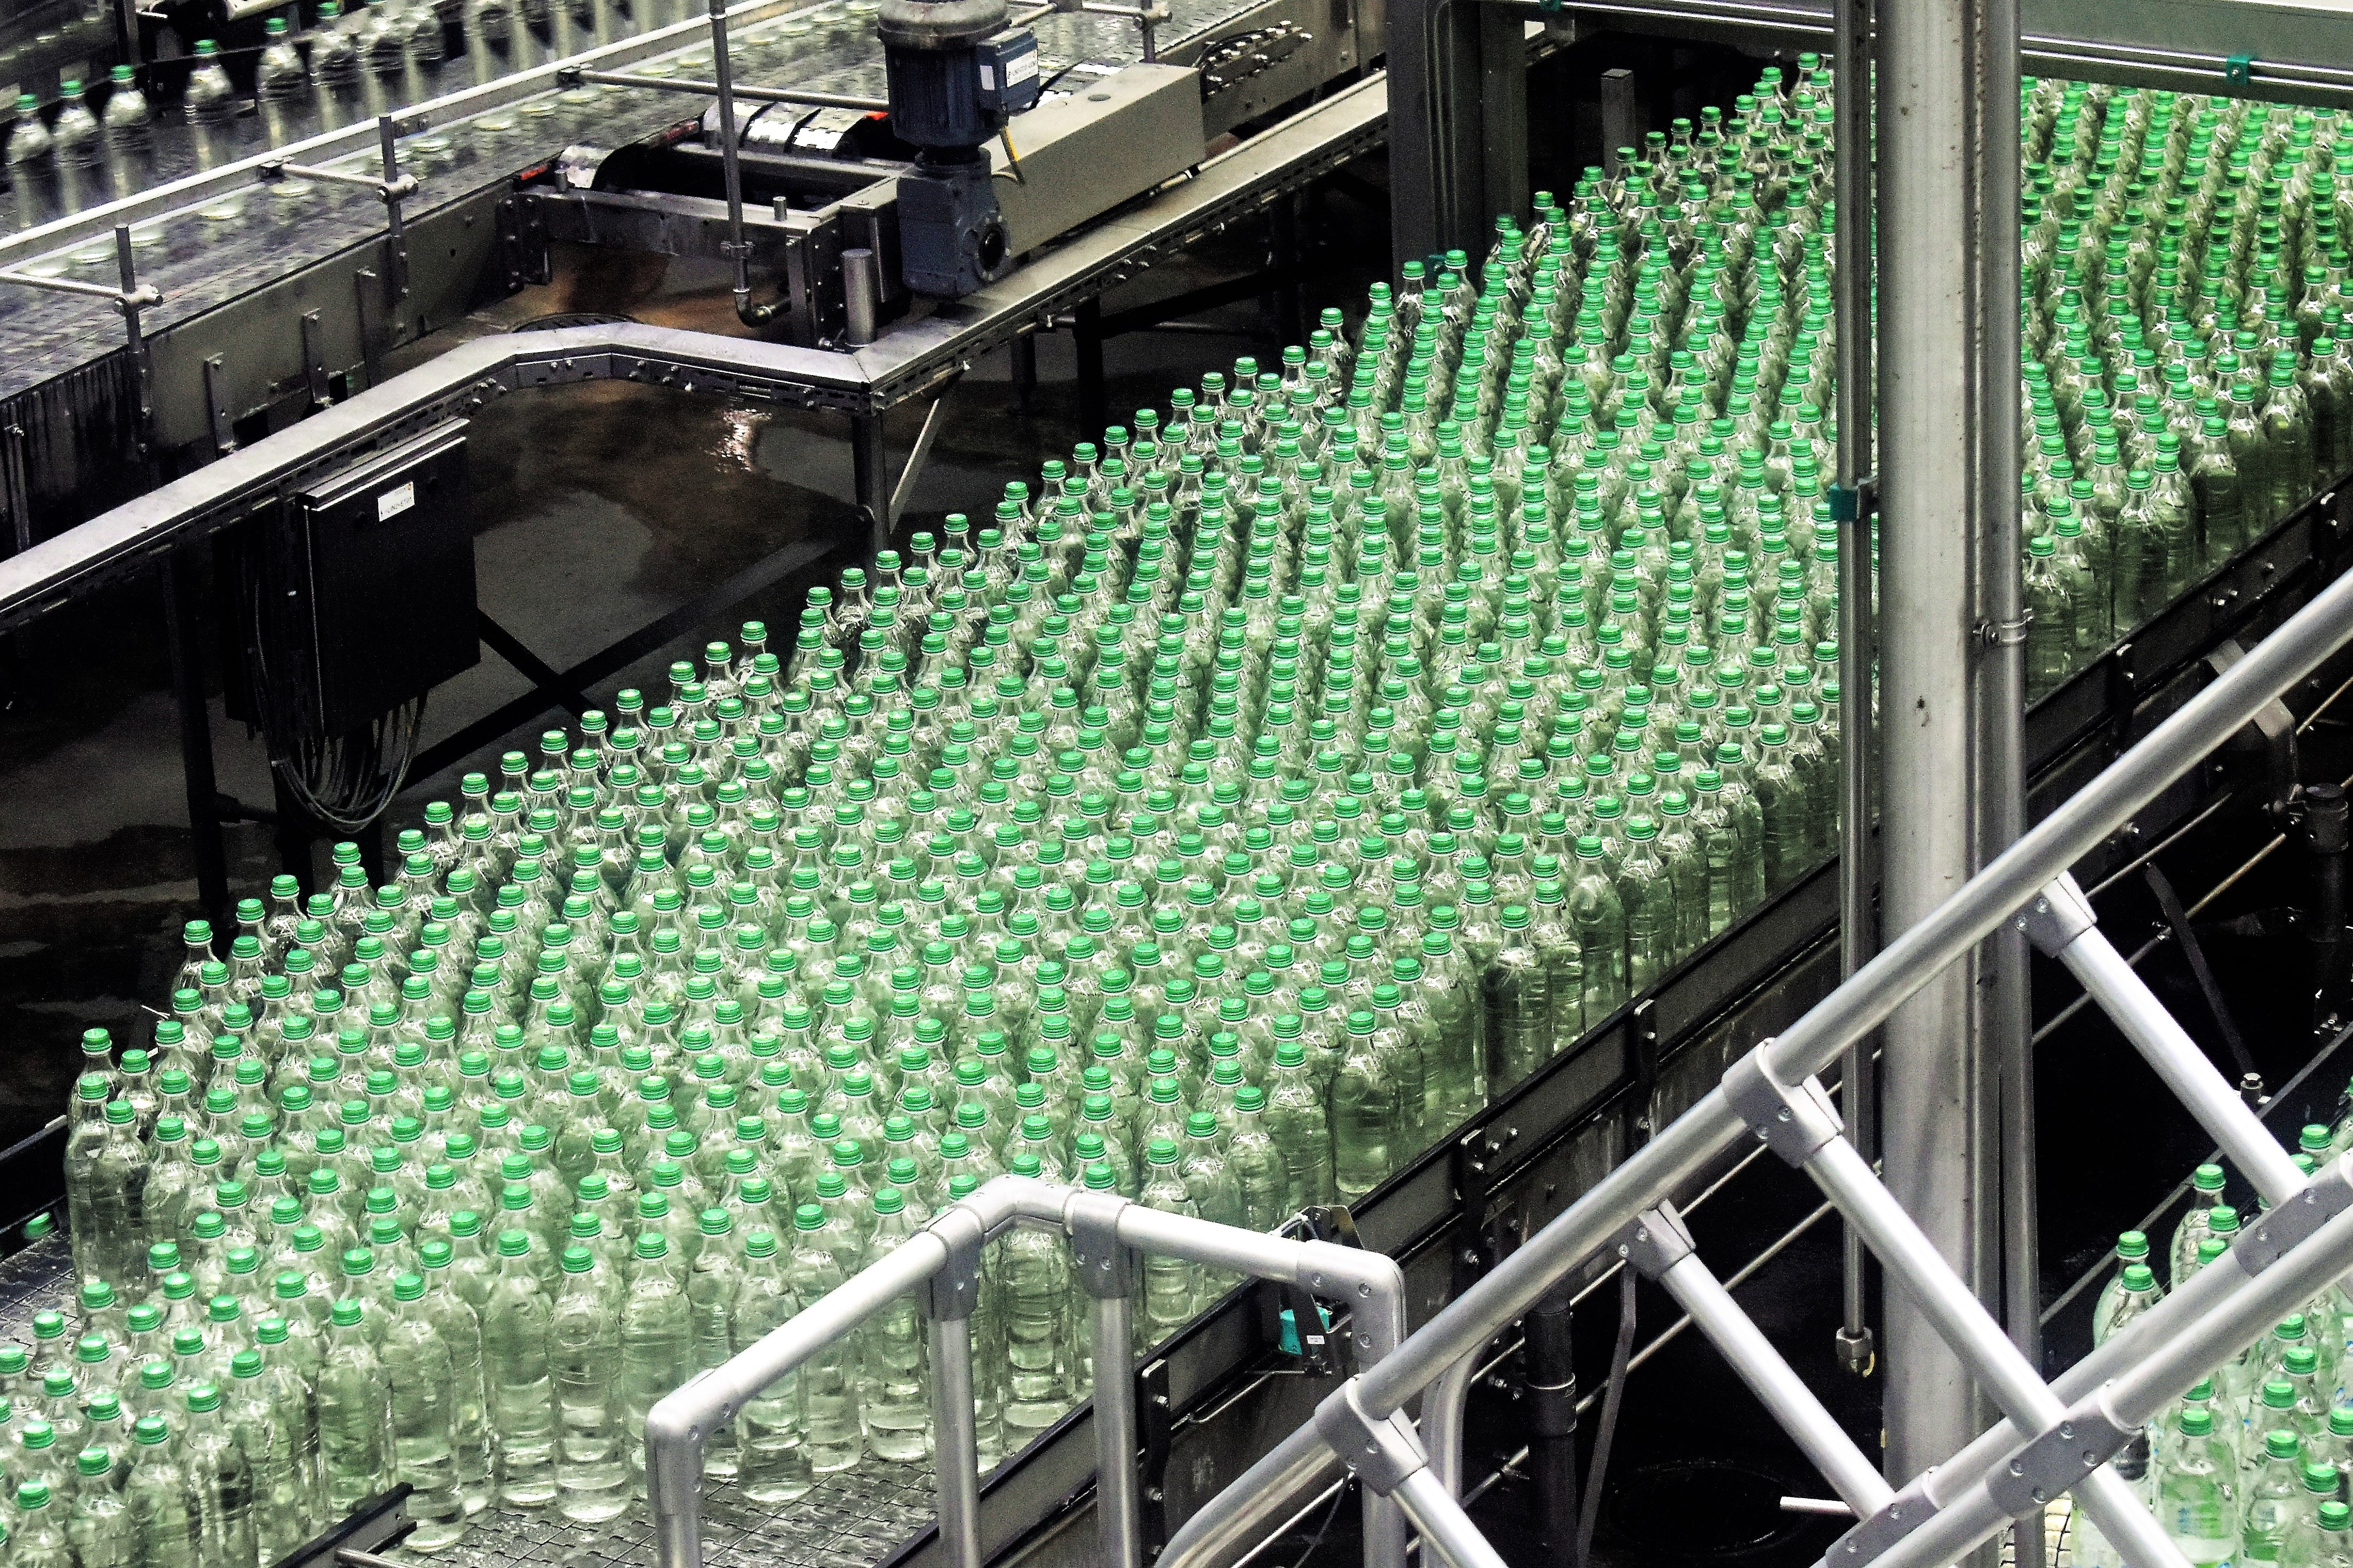 Green glass bottles on a manufacturing line.